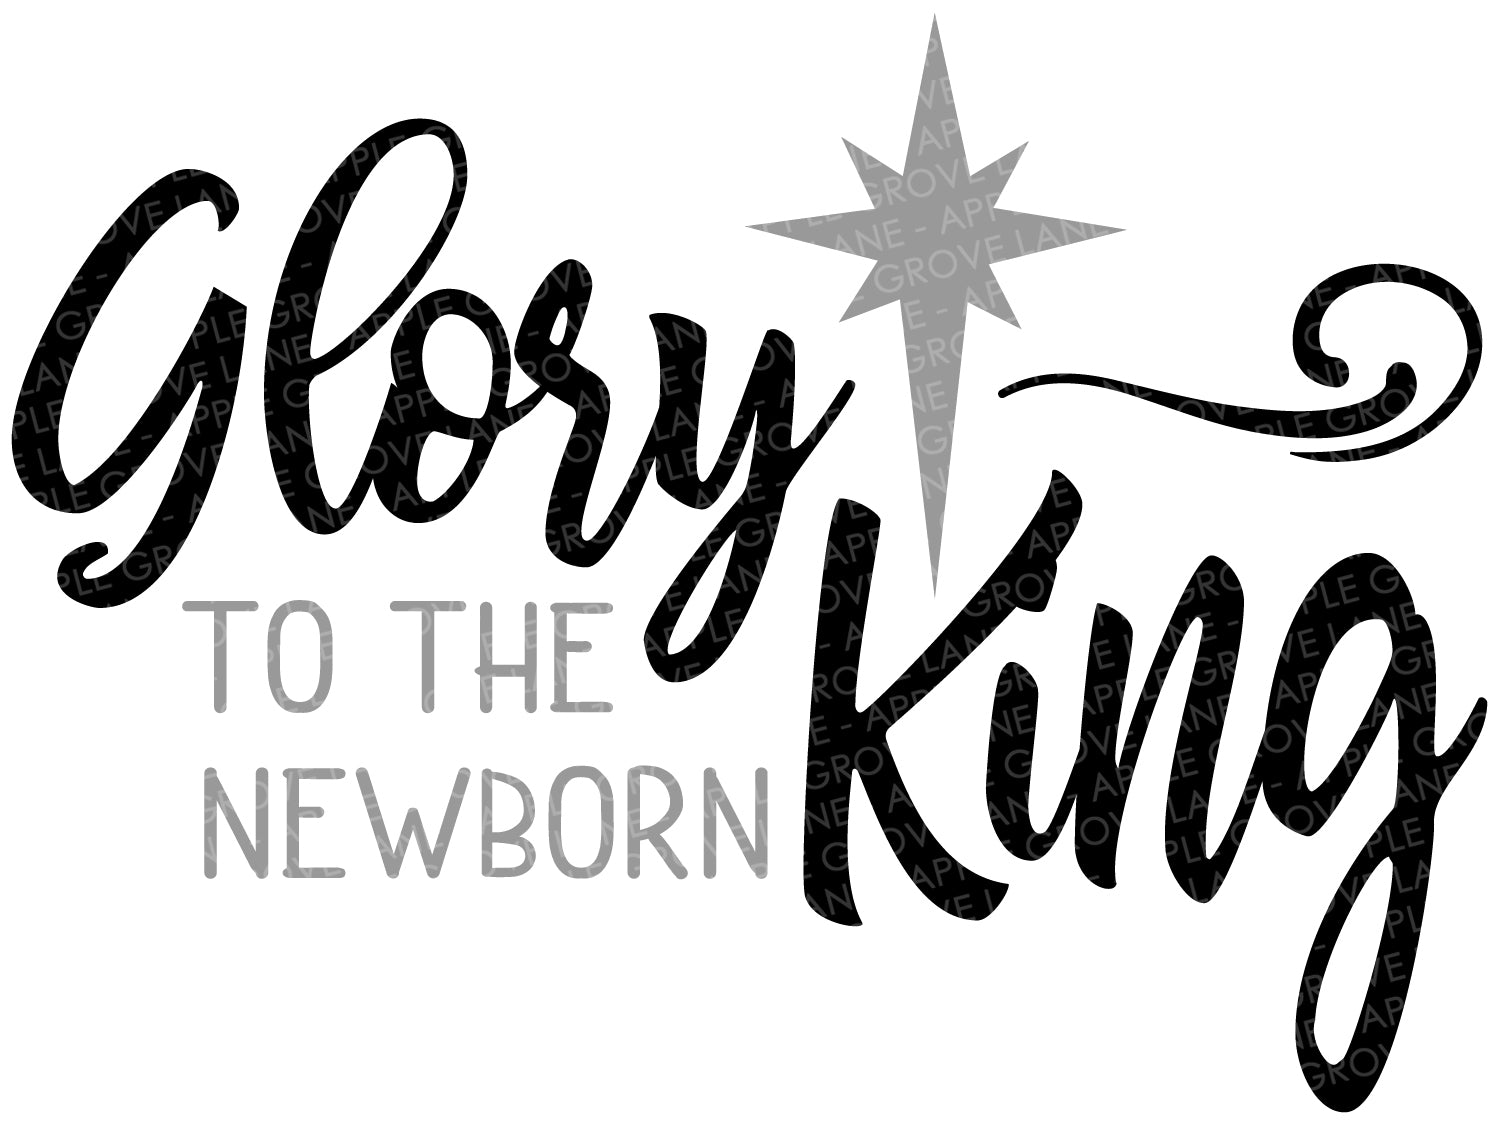 Glory To The Newborn King Svg - Glory Svg - Nativity Svg - Christmas SVG - Religious Christmas Svg - Newborn King SVG - Svg Eps Dxf Png